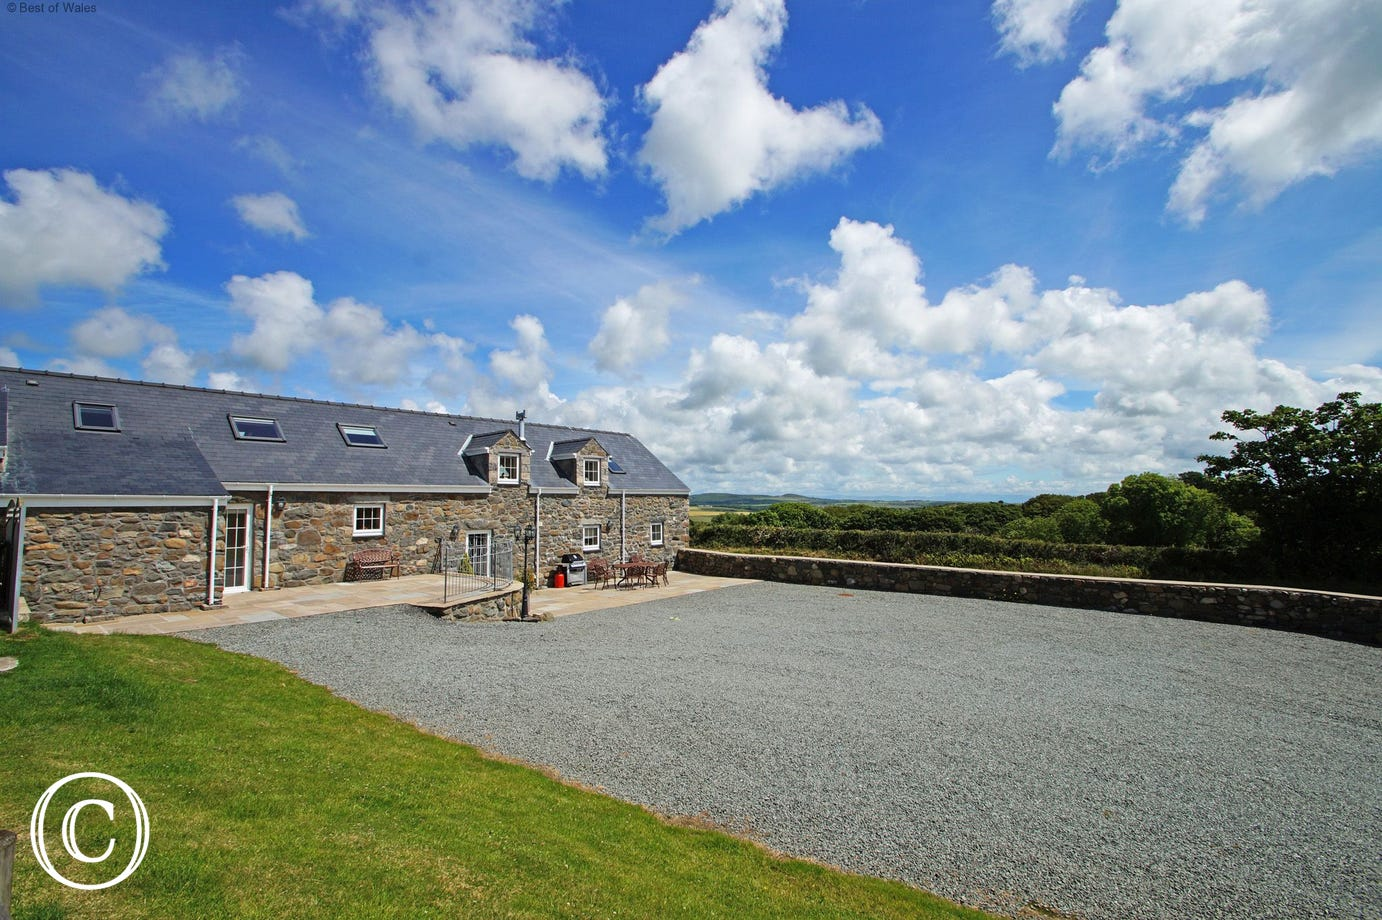 Gadlas is surrounded by spectacular views of the Llyn Peninsula.